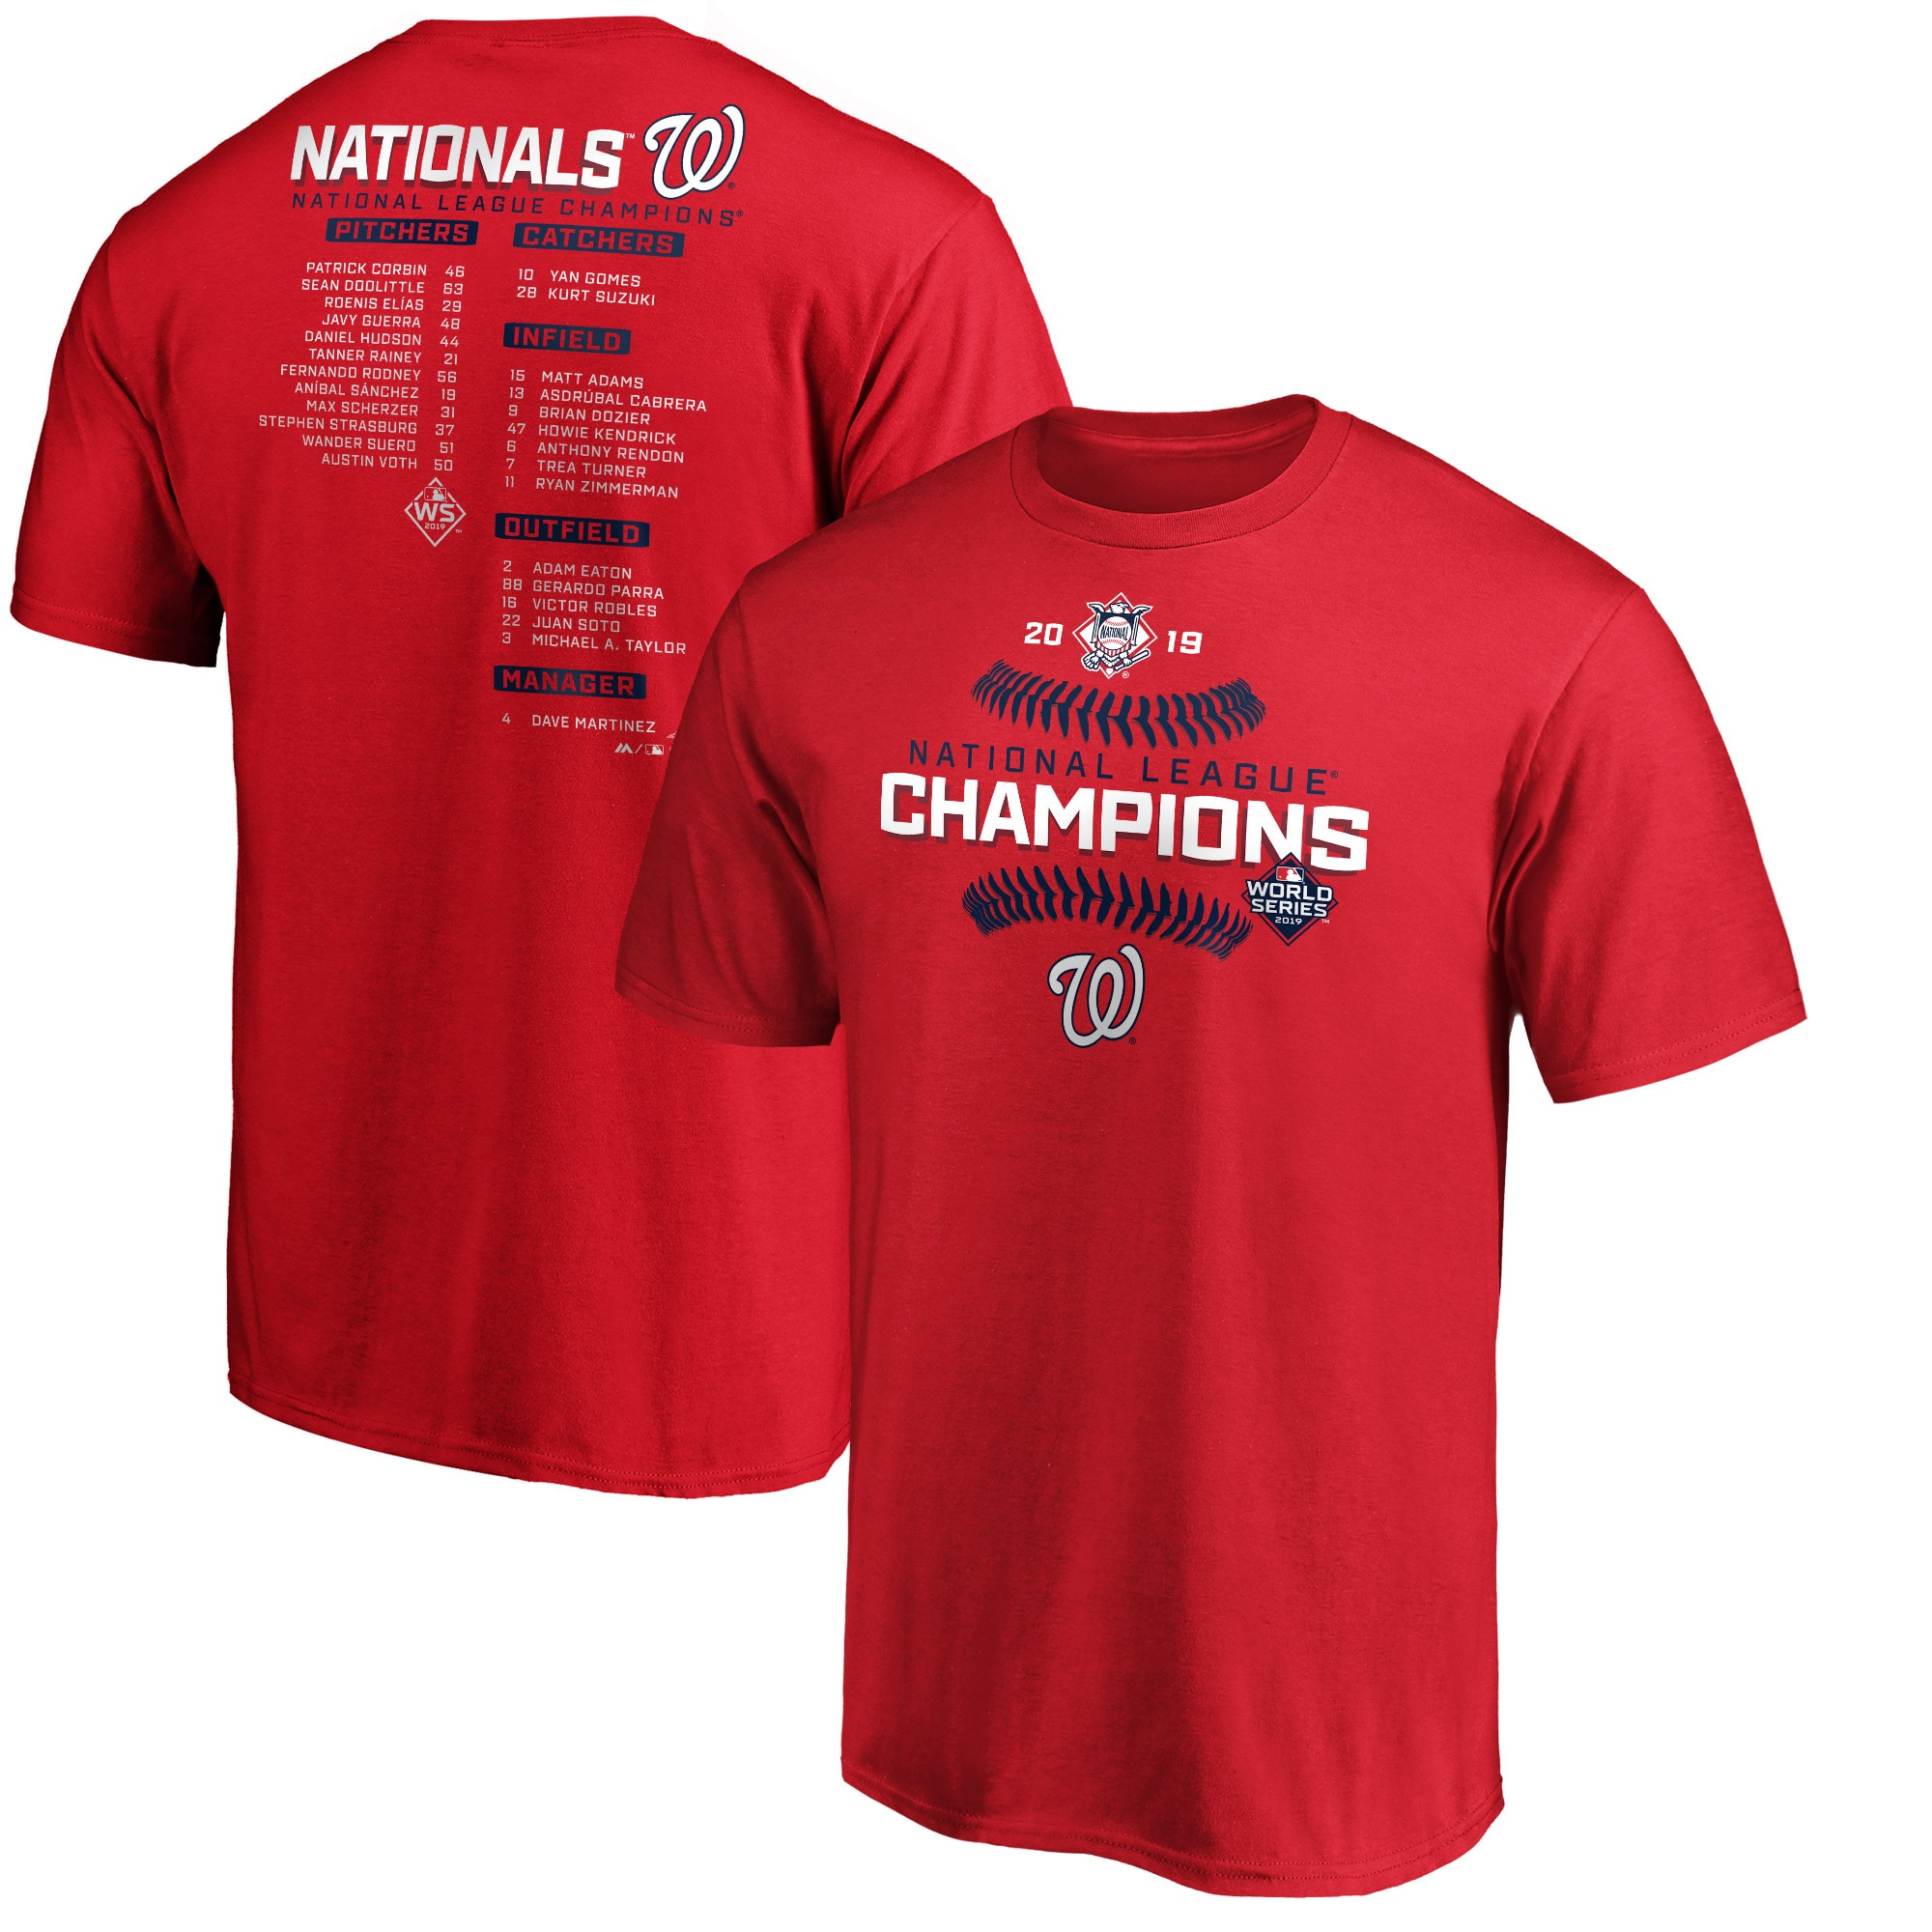 Washington Nationals Majestic 2019 National League Champions Bloop Single Roster T-Shirt - Red